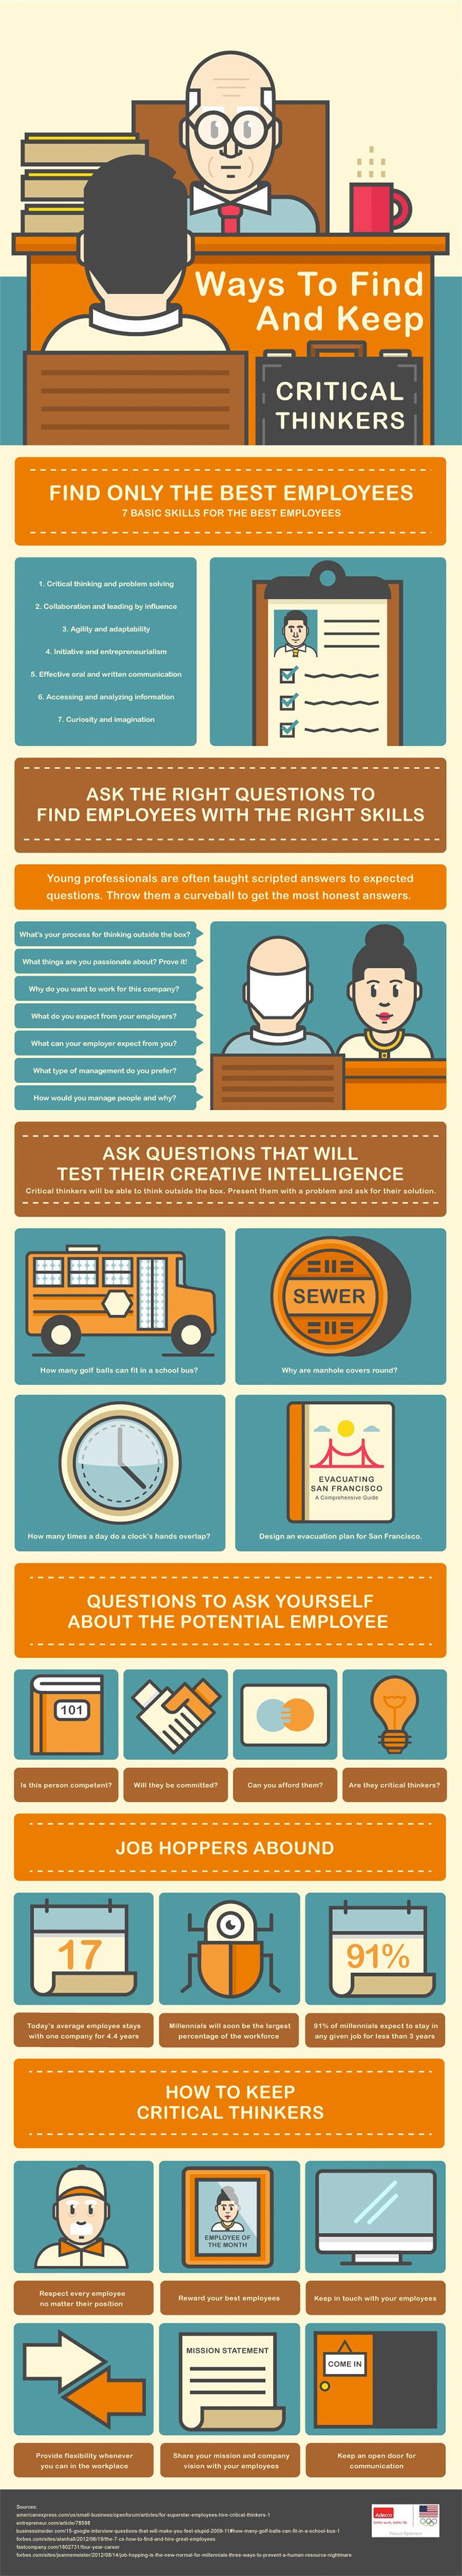 Work Experience, Be Damned: Here's How to Hire the Best Problem Solvers (Infographic)